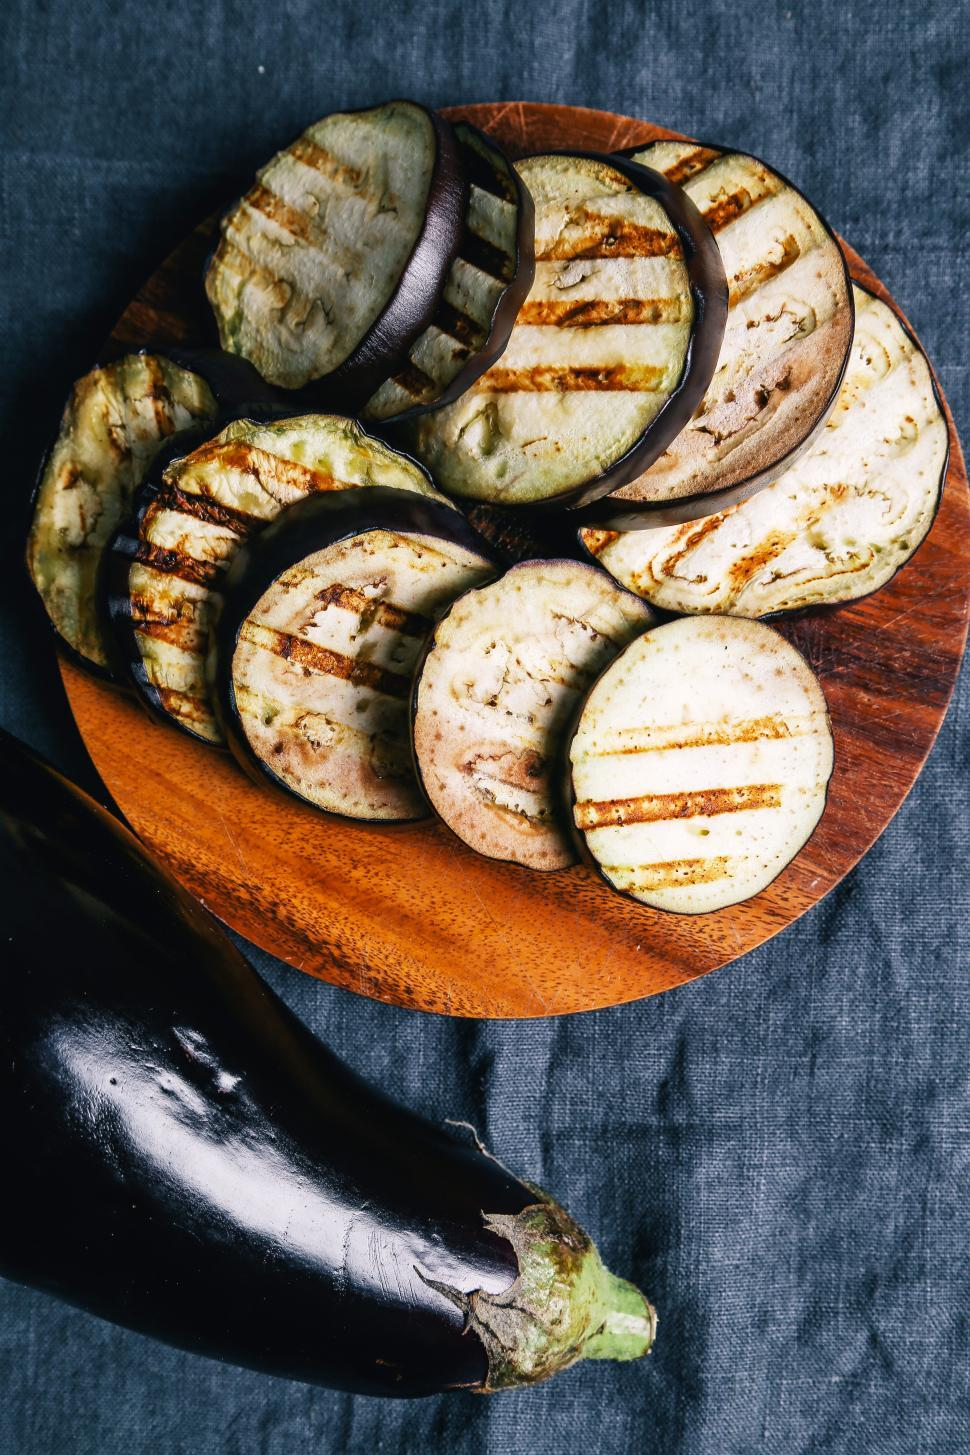 Download Free Stock Photo of Grilled and sliced Eggplant